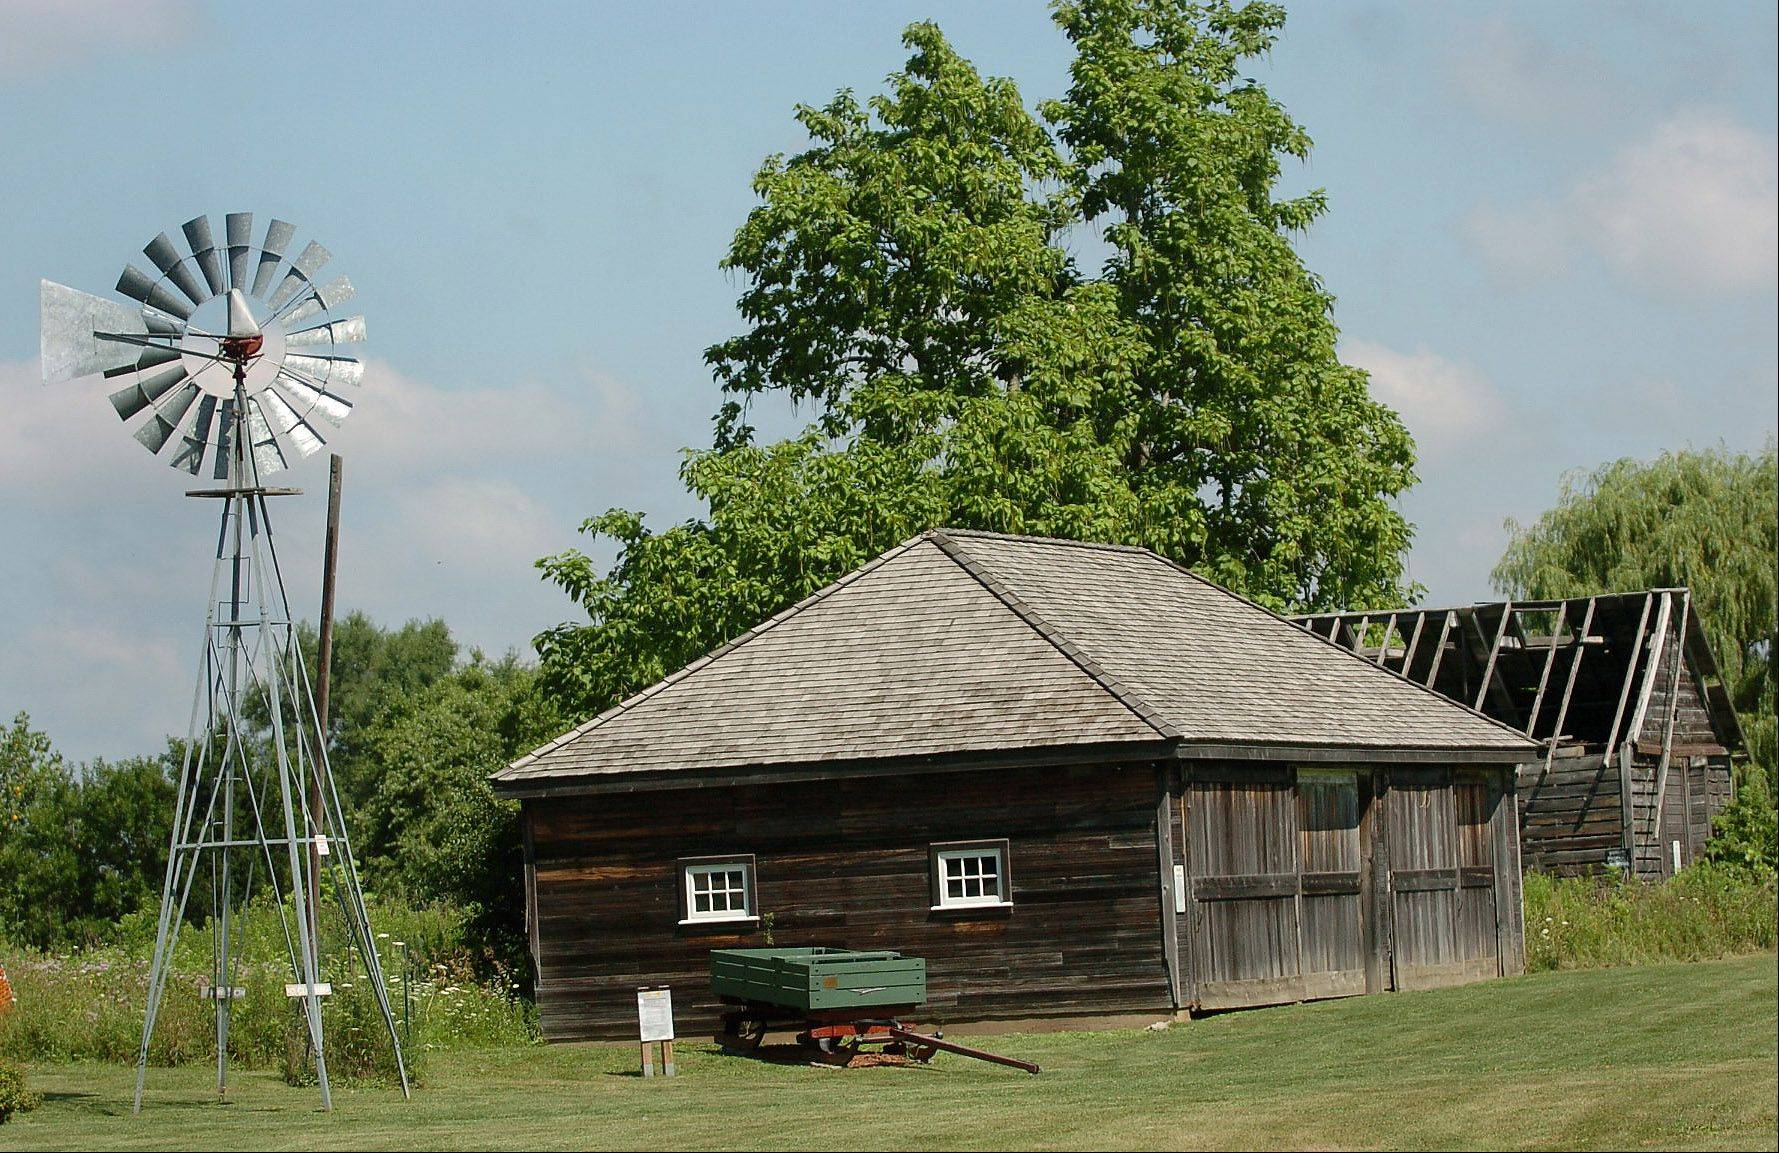 Vehe Farm, now used as an educational and community center, features a number of old structures, including a machine shed and windmill.